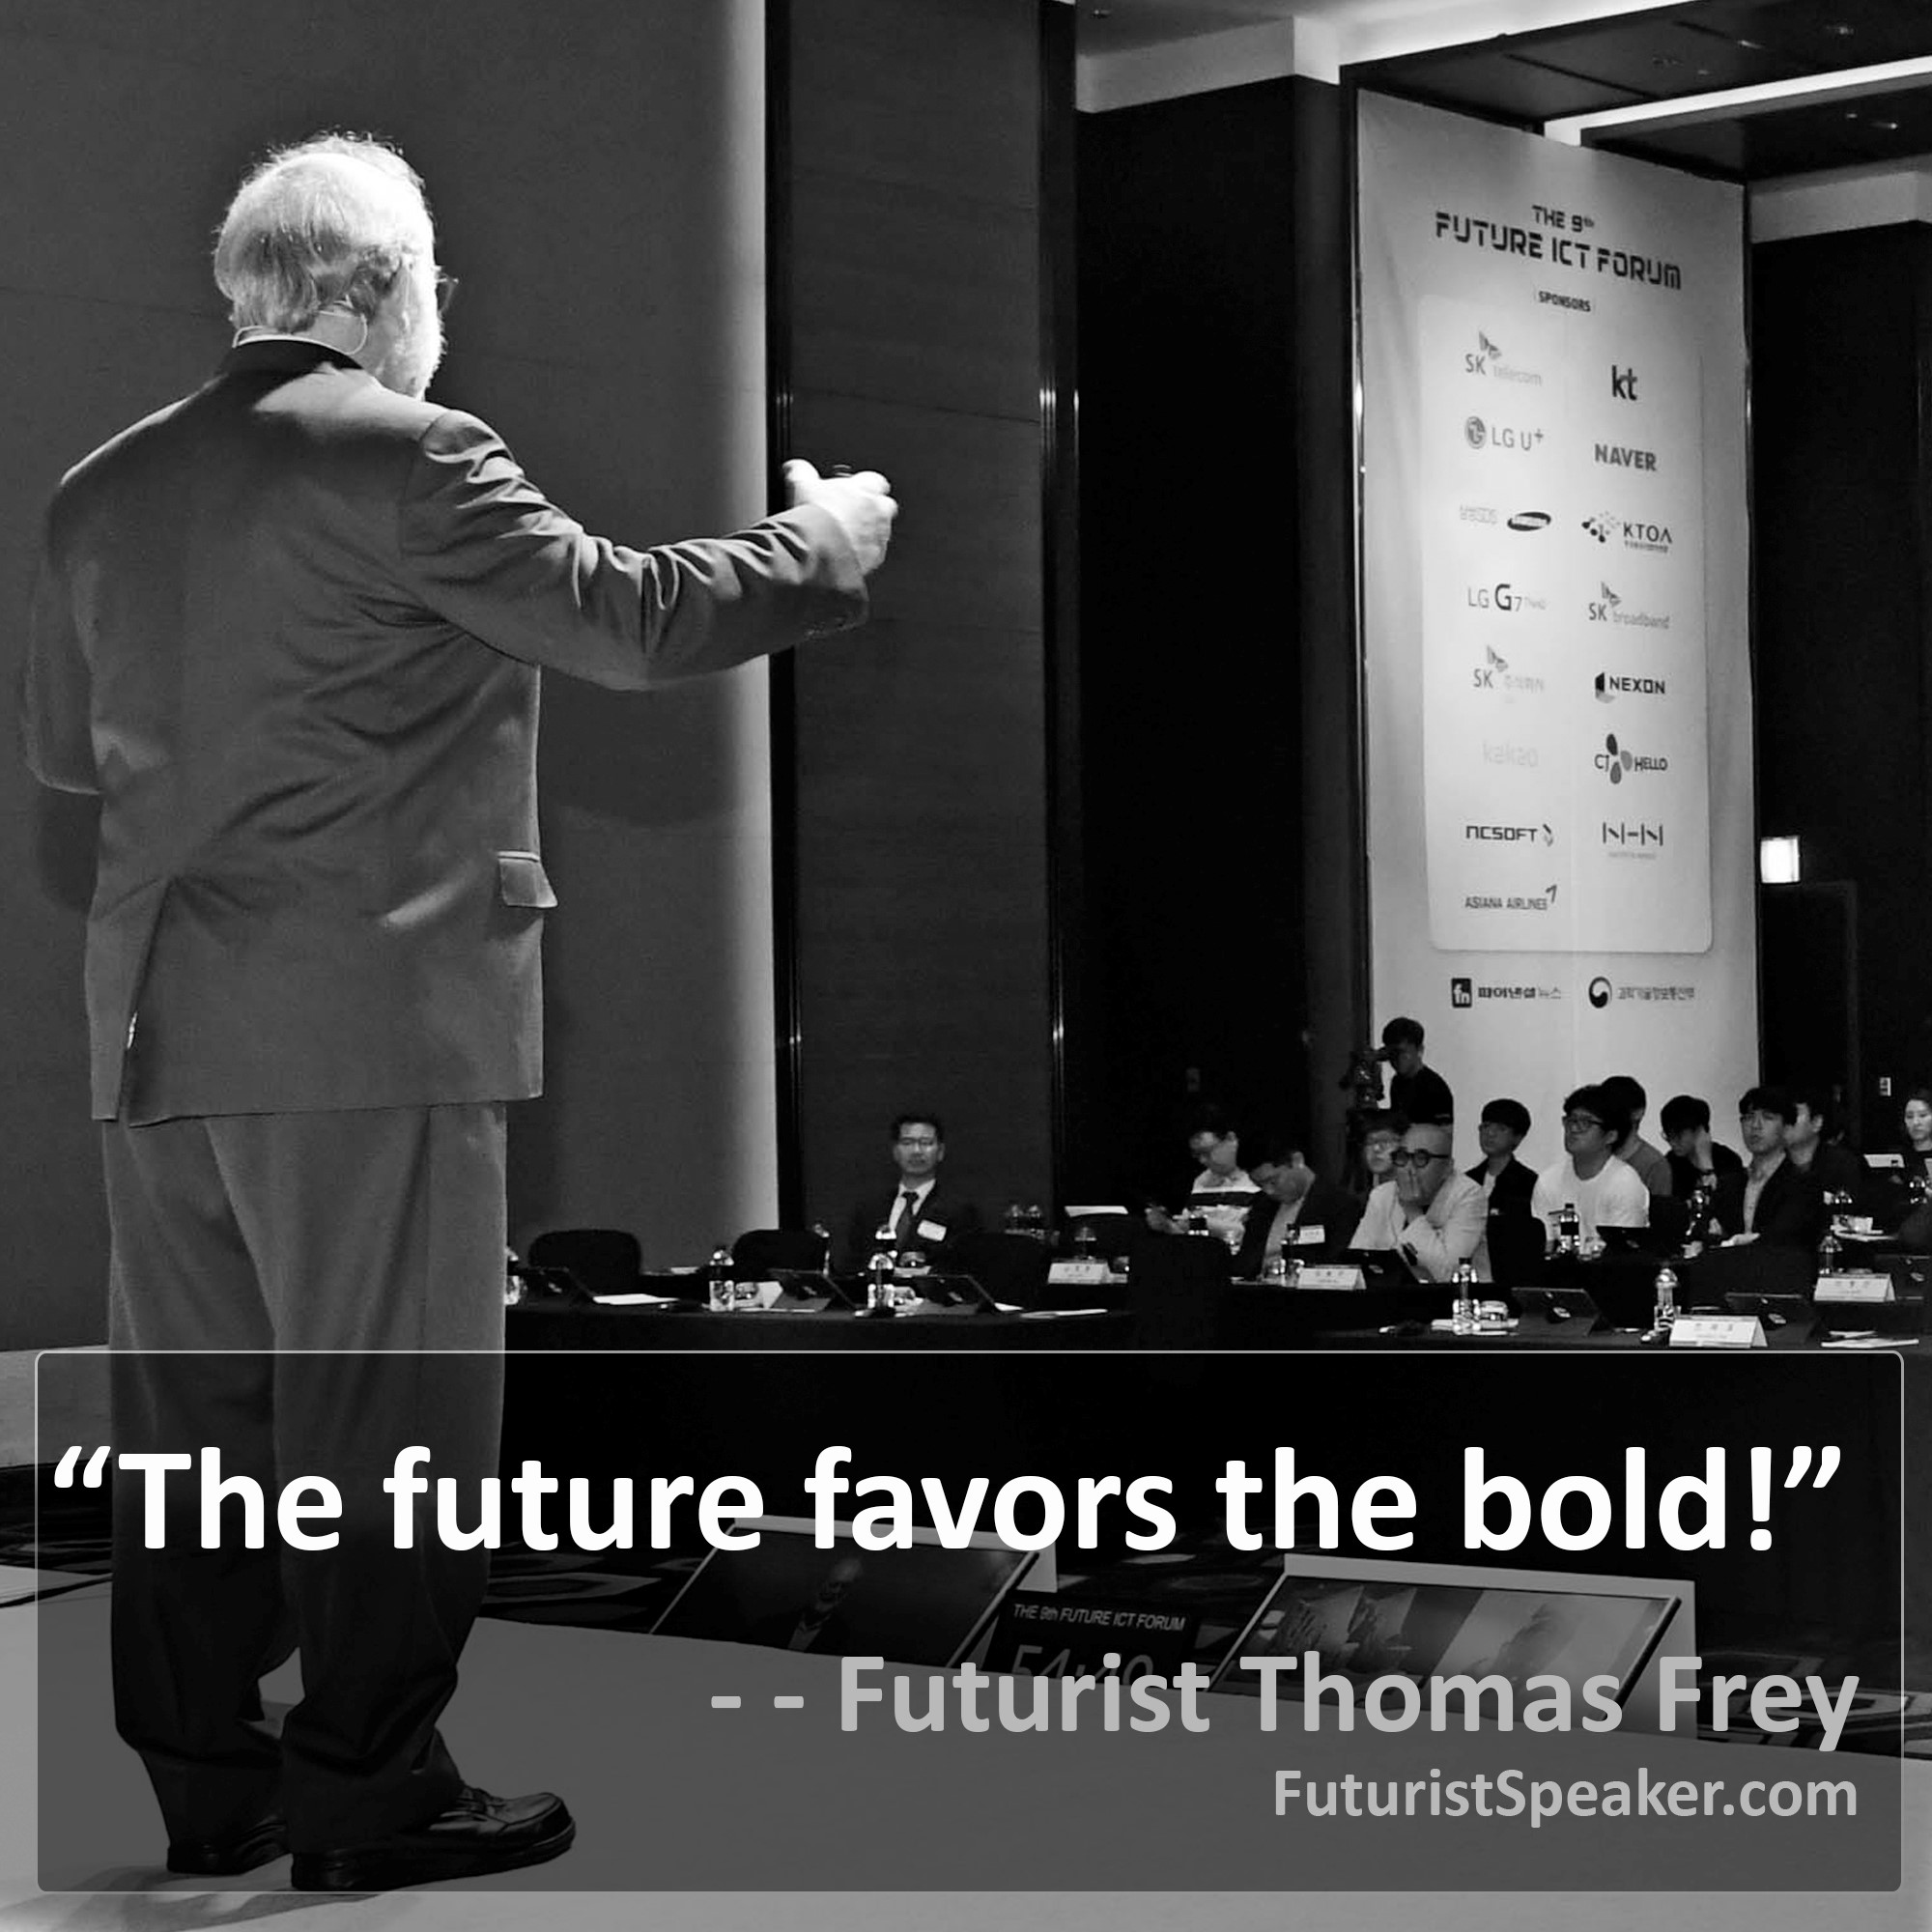 Thomas Frey Futurist Speaker Famous Quote: The future favors the bold.